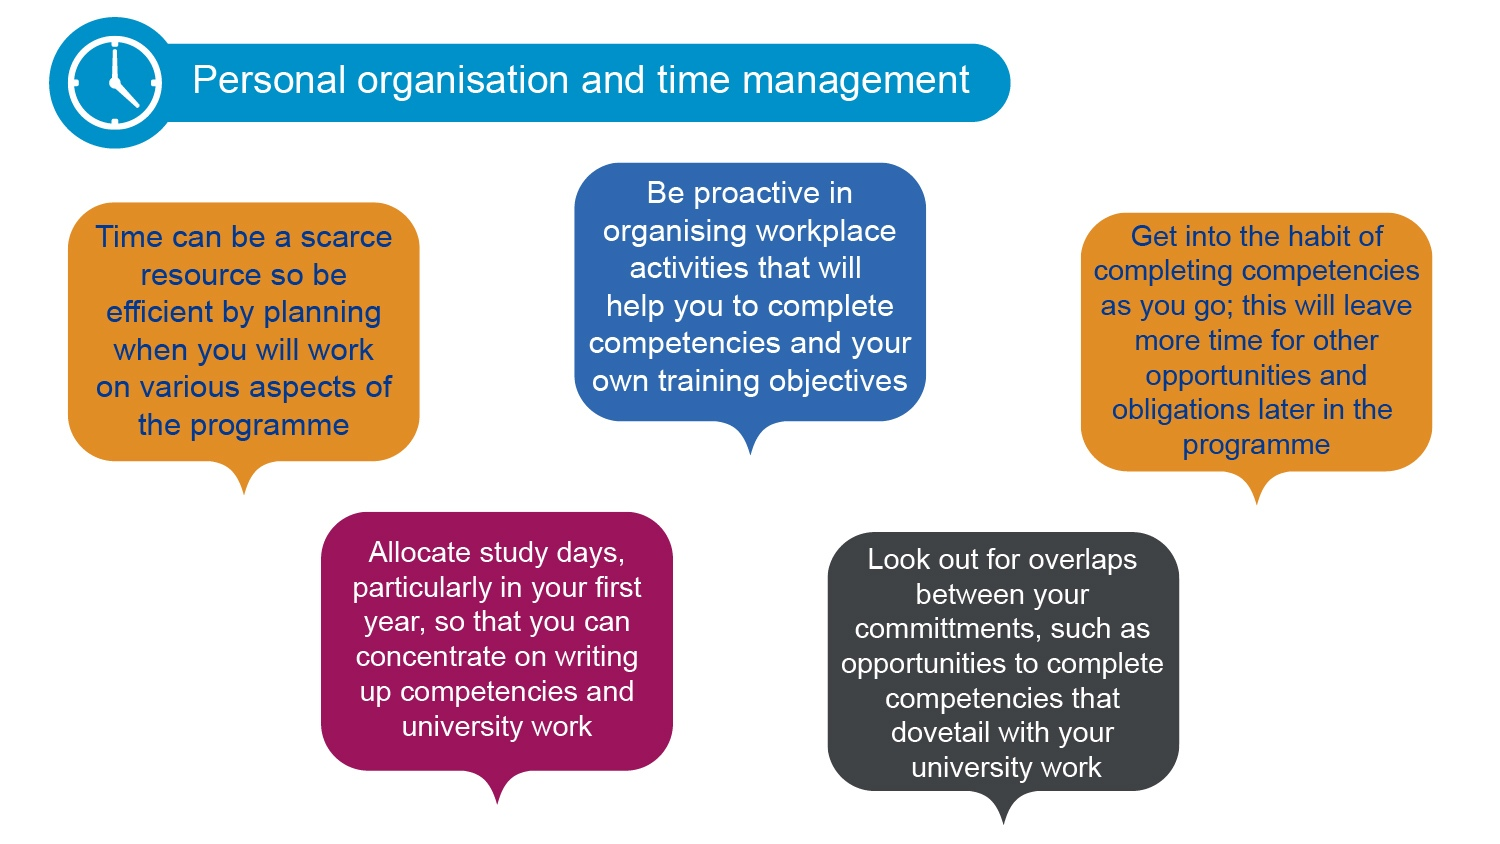 Graphic showing quotes from STP trainees about personal organisation and time management